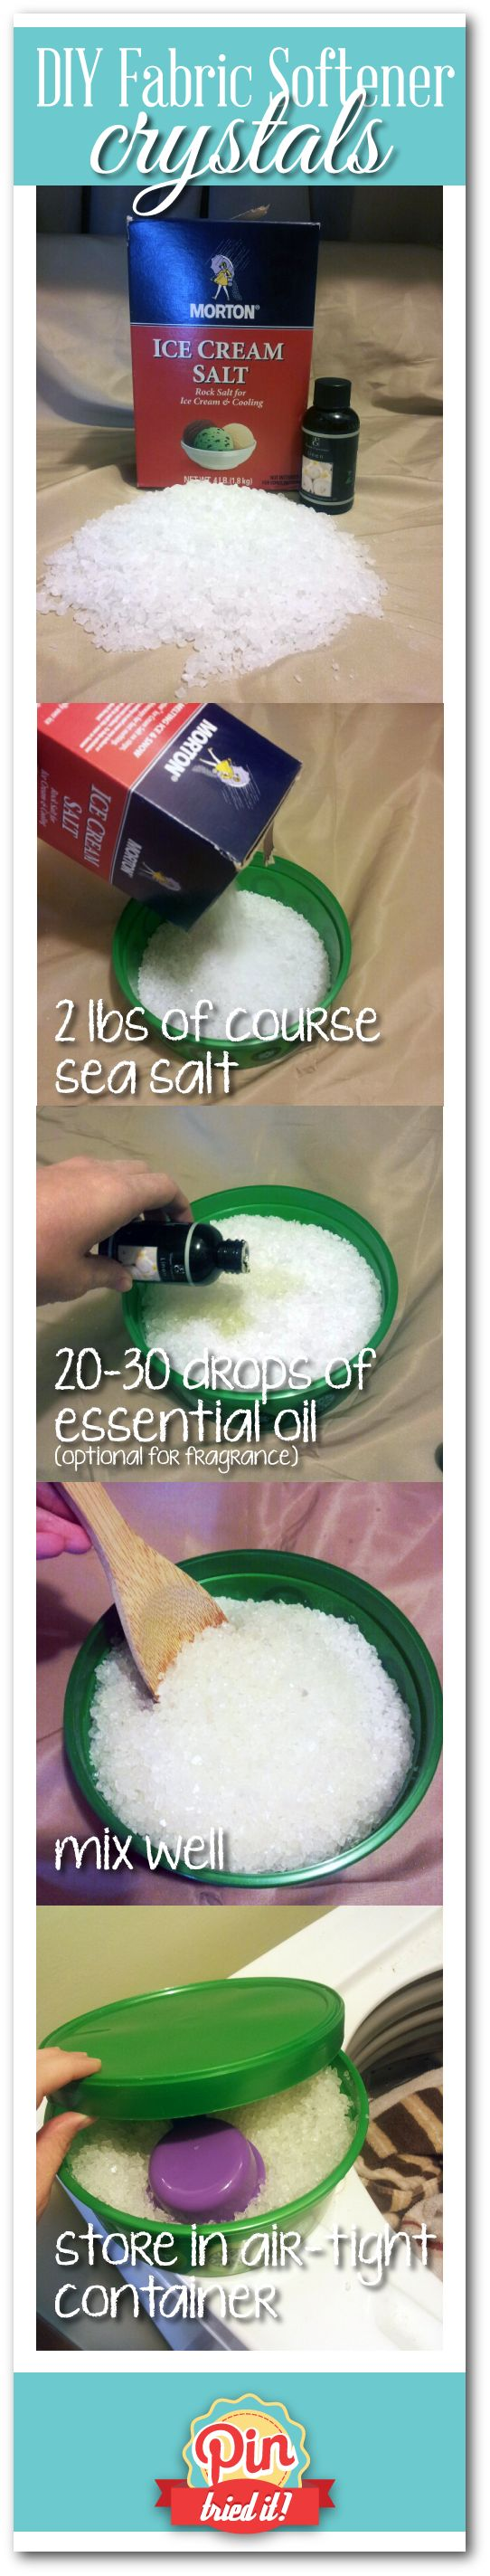 DIY Laundry Fabric Softener Crystals. 2lbs course salt, 20-30 drops of essential